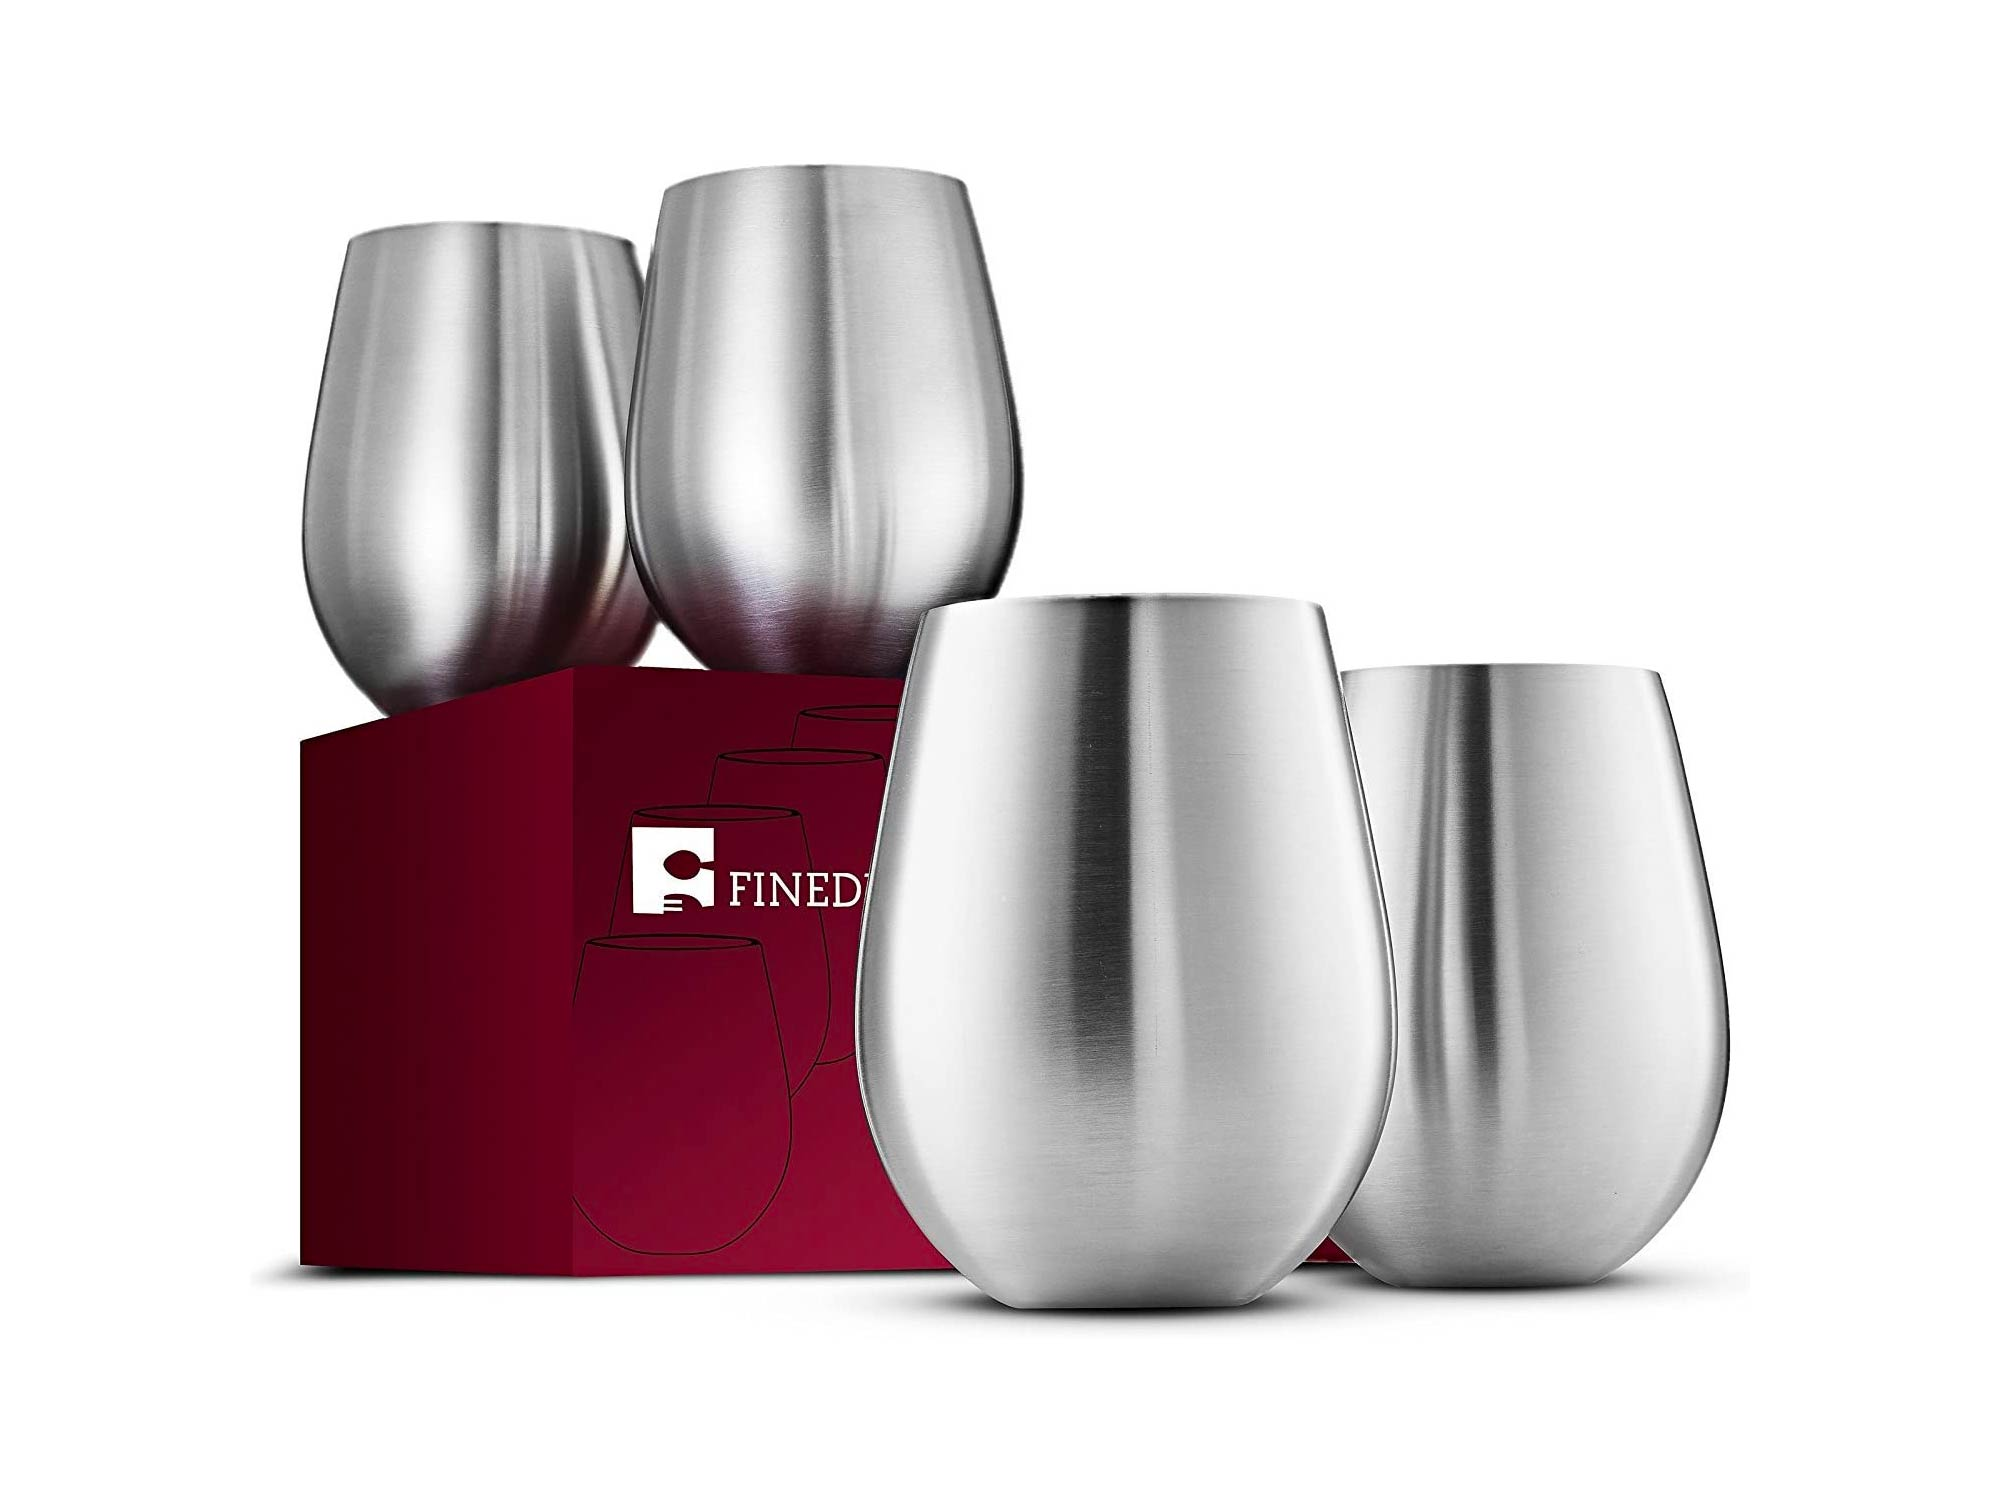 Stainless Steel Wine Glasses - Set of 4 Large & Elegant 18 Oz. Premium Grade 18/8 Stainless Steel Red & White Stemless Wine Glasses, Unbreakable, Portable Wine Tumbler, for Outdoor Events, Picnics